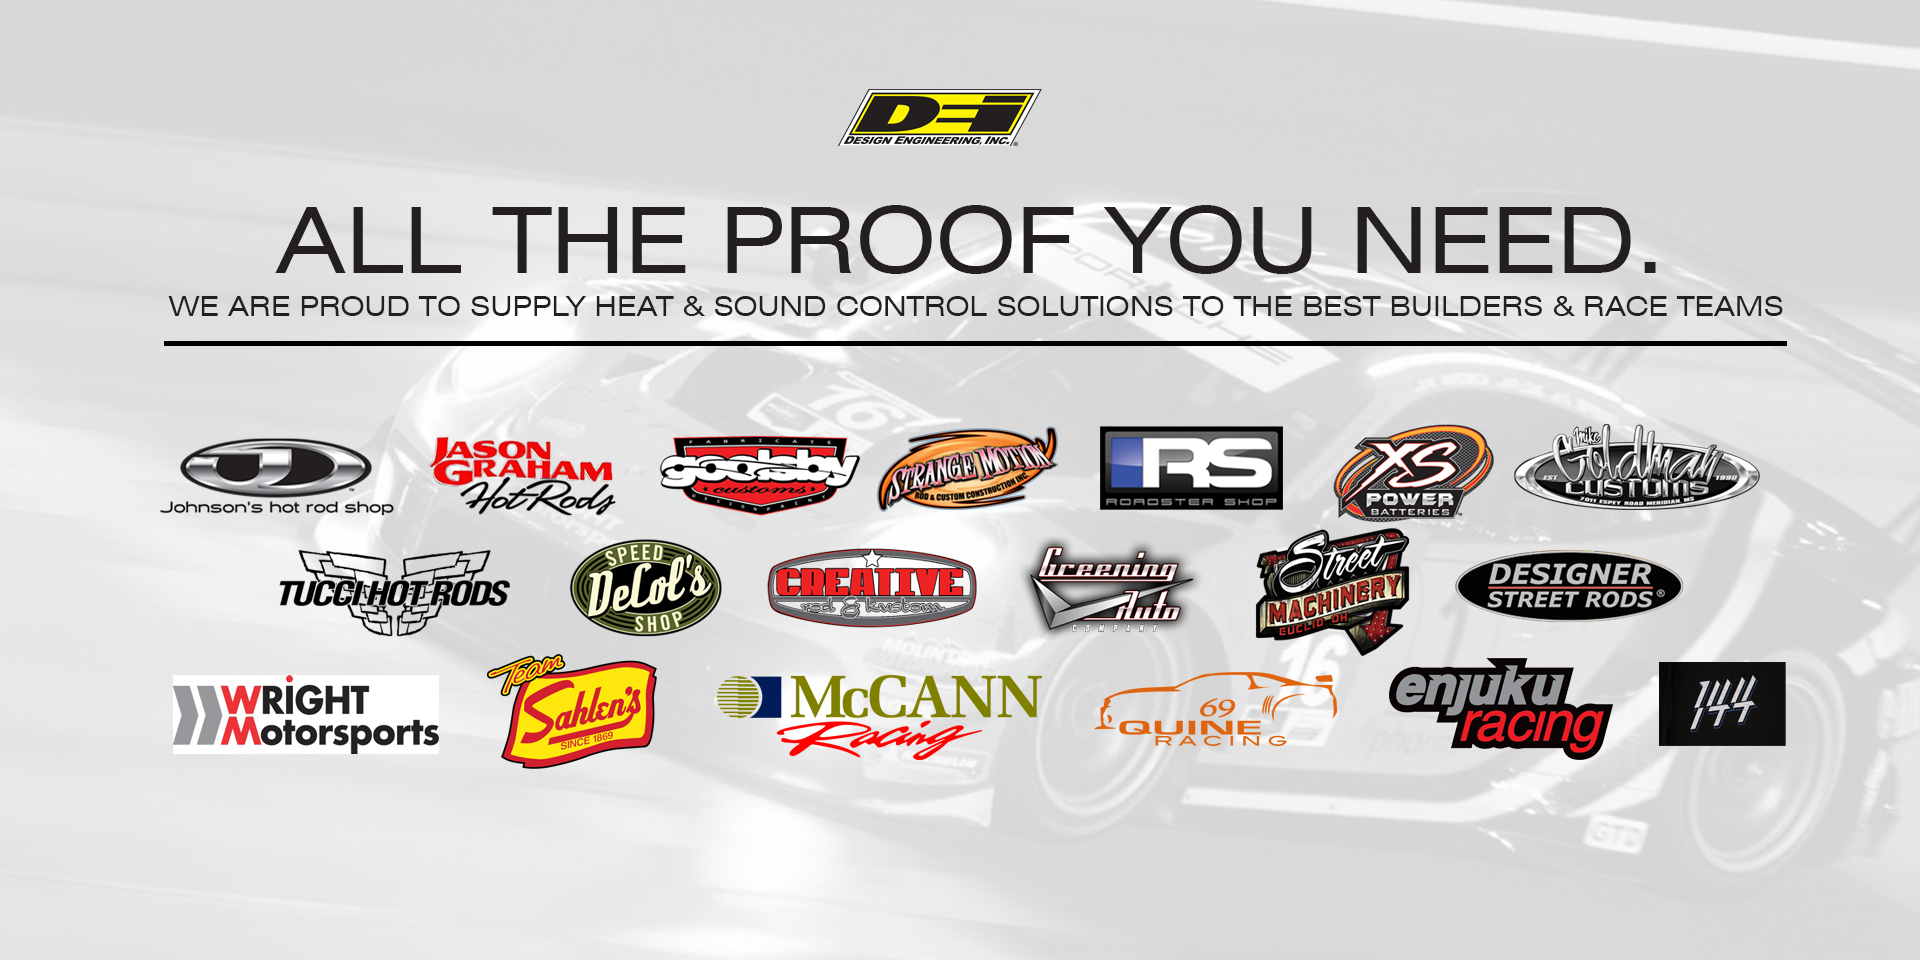 Proud to supply the best builders and race teams